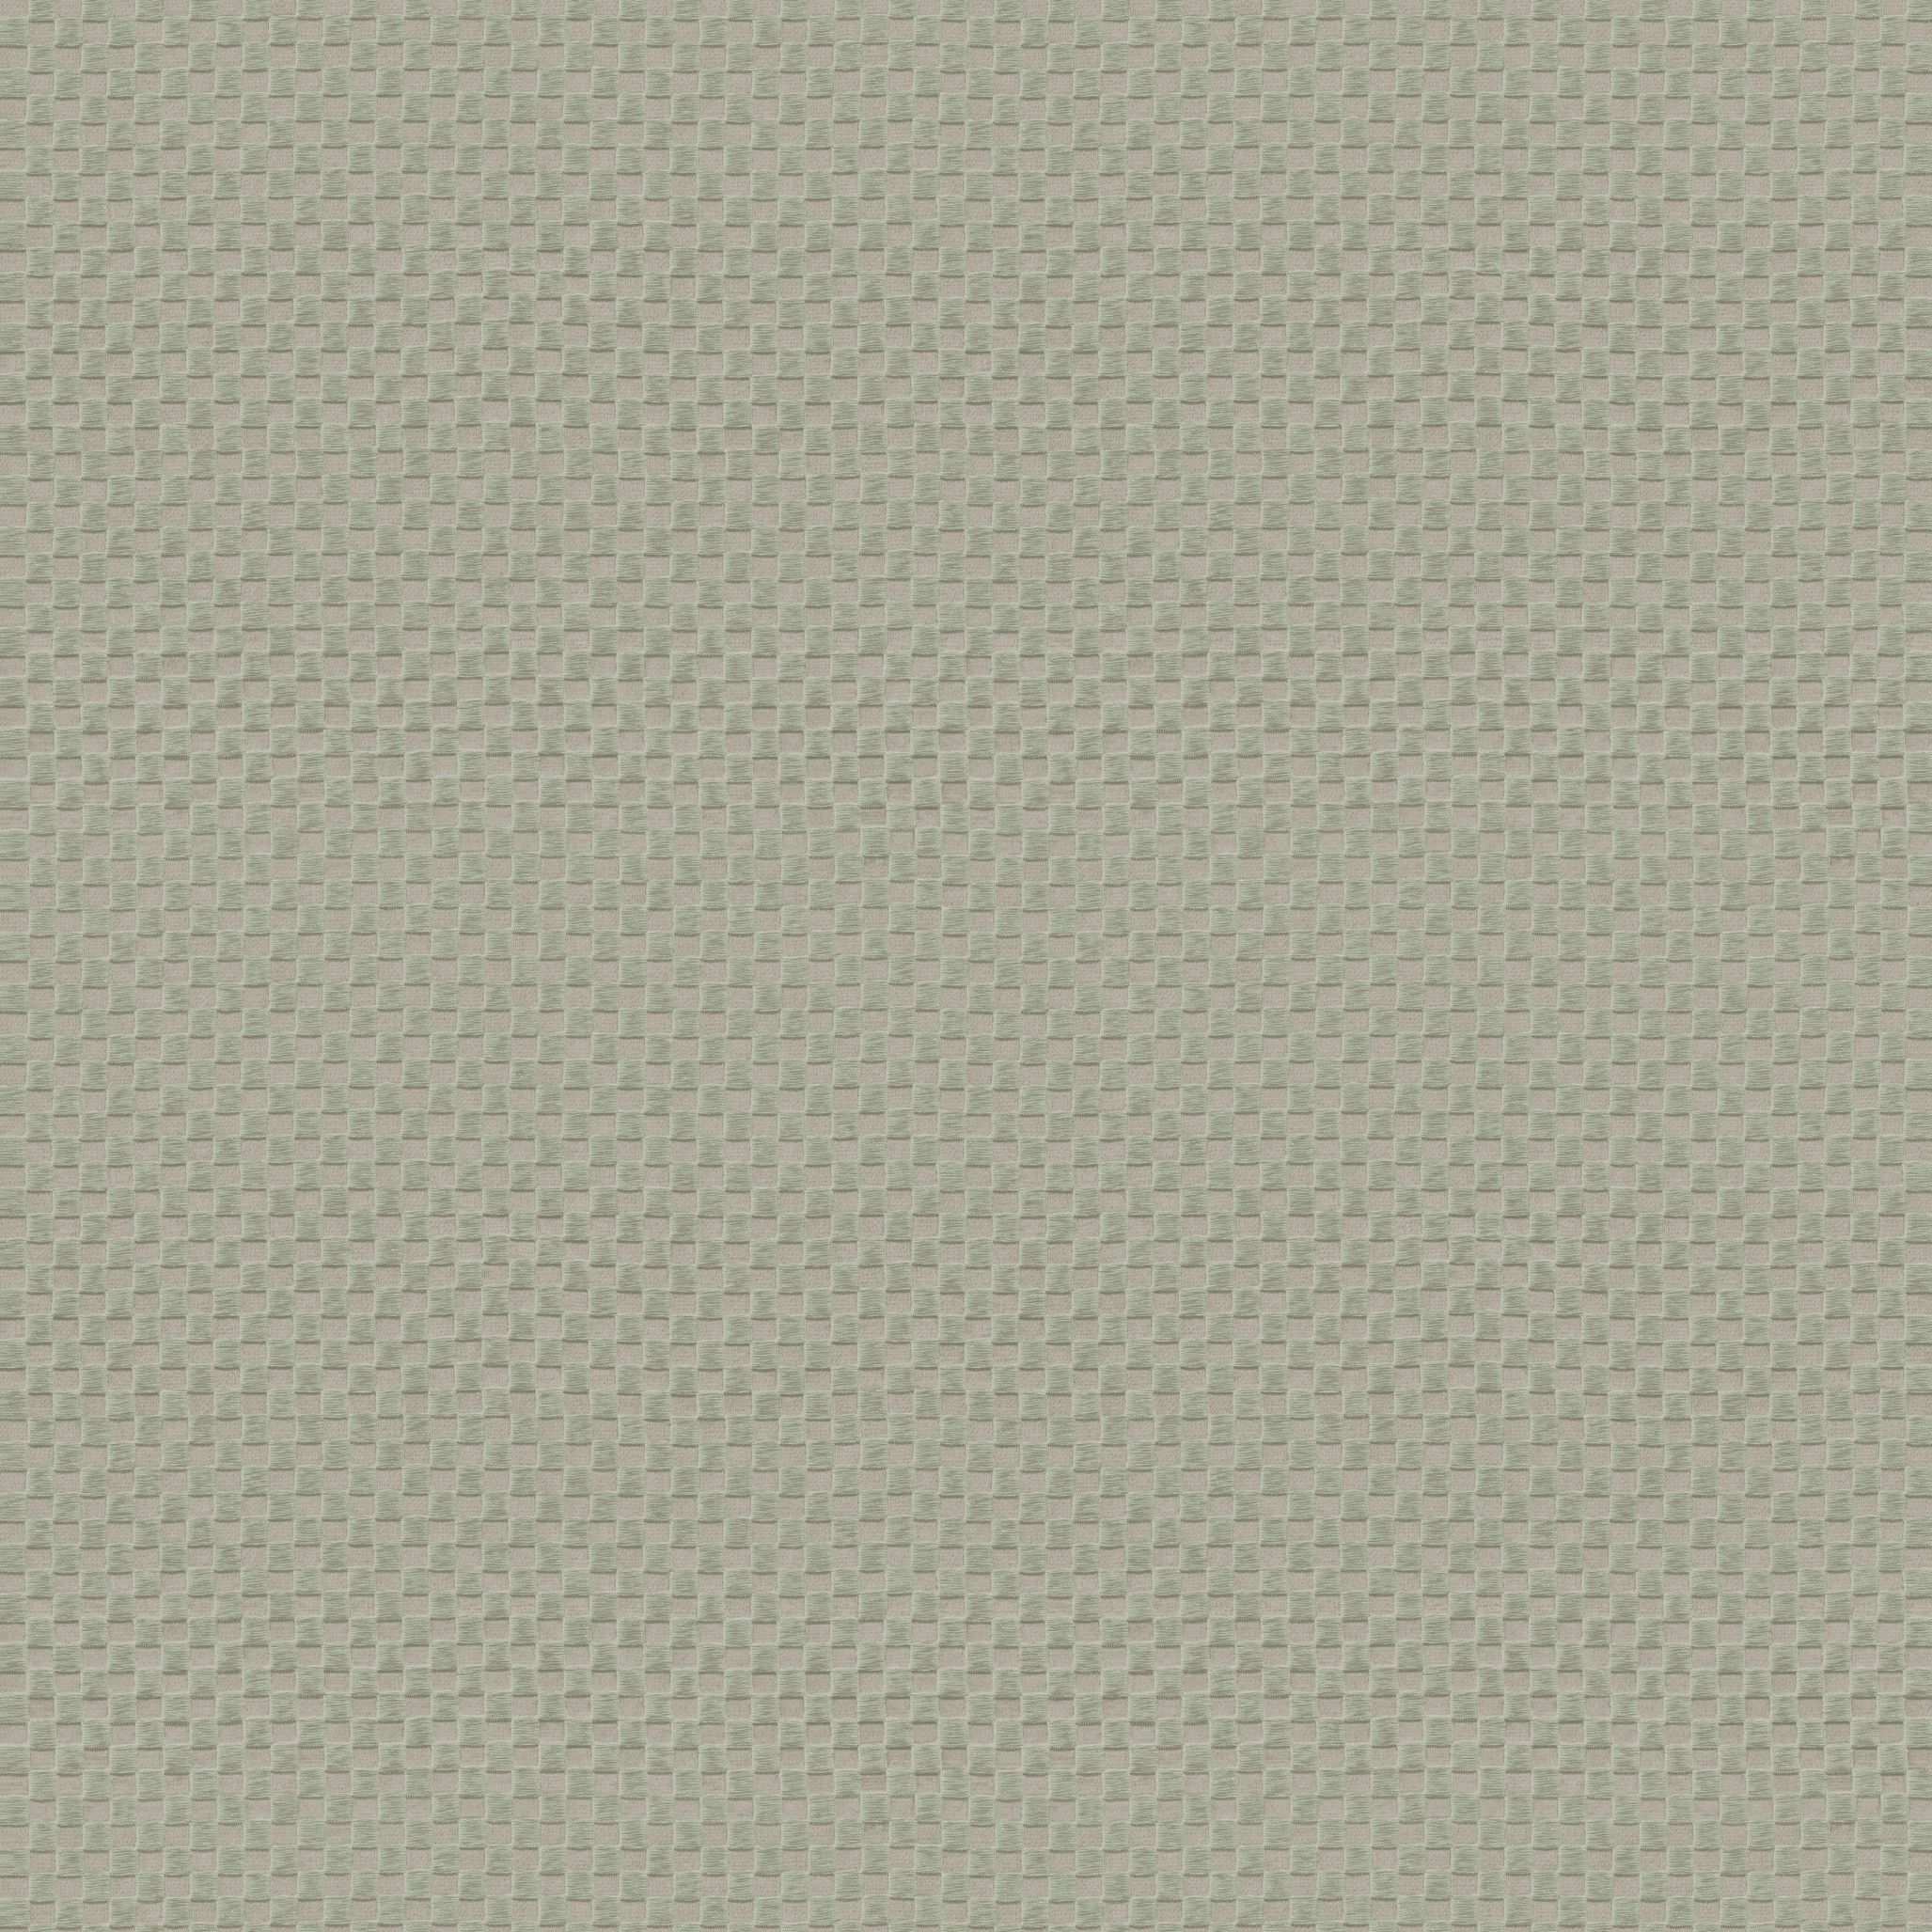 Pantheon has a materic texture with small checks. Comes in 7 colourways by Armani/Casa, available exclusively at NewWall.com.